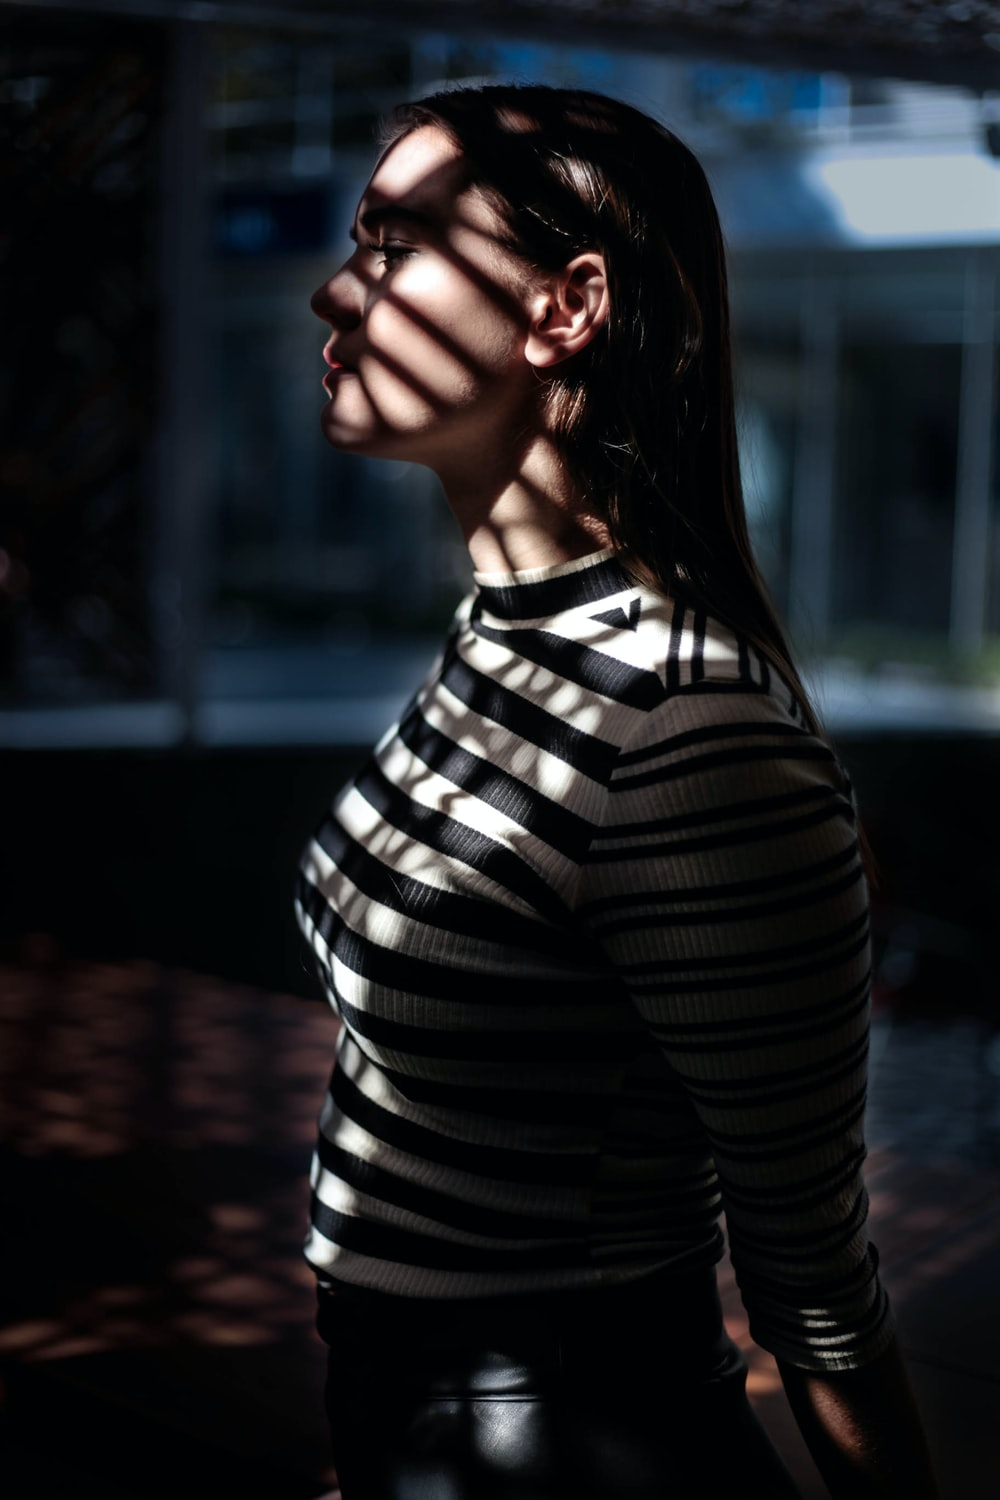 A sad woman in a striped shirt.